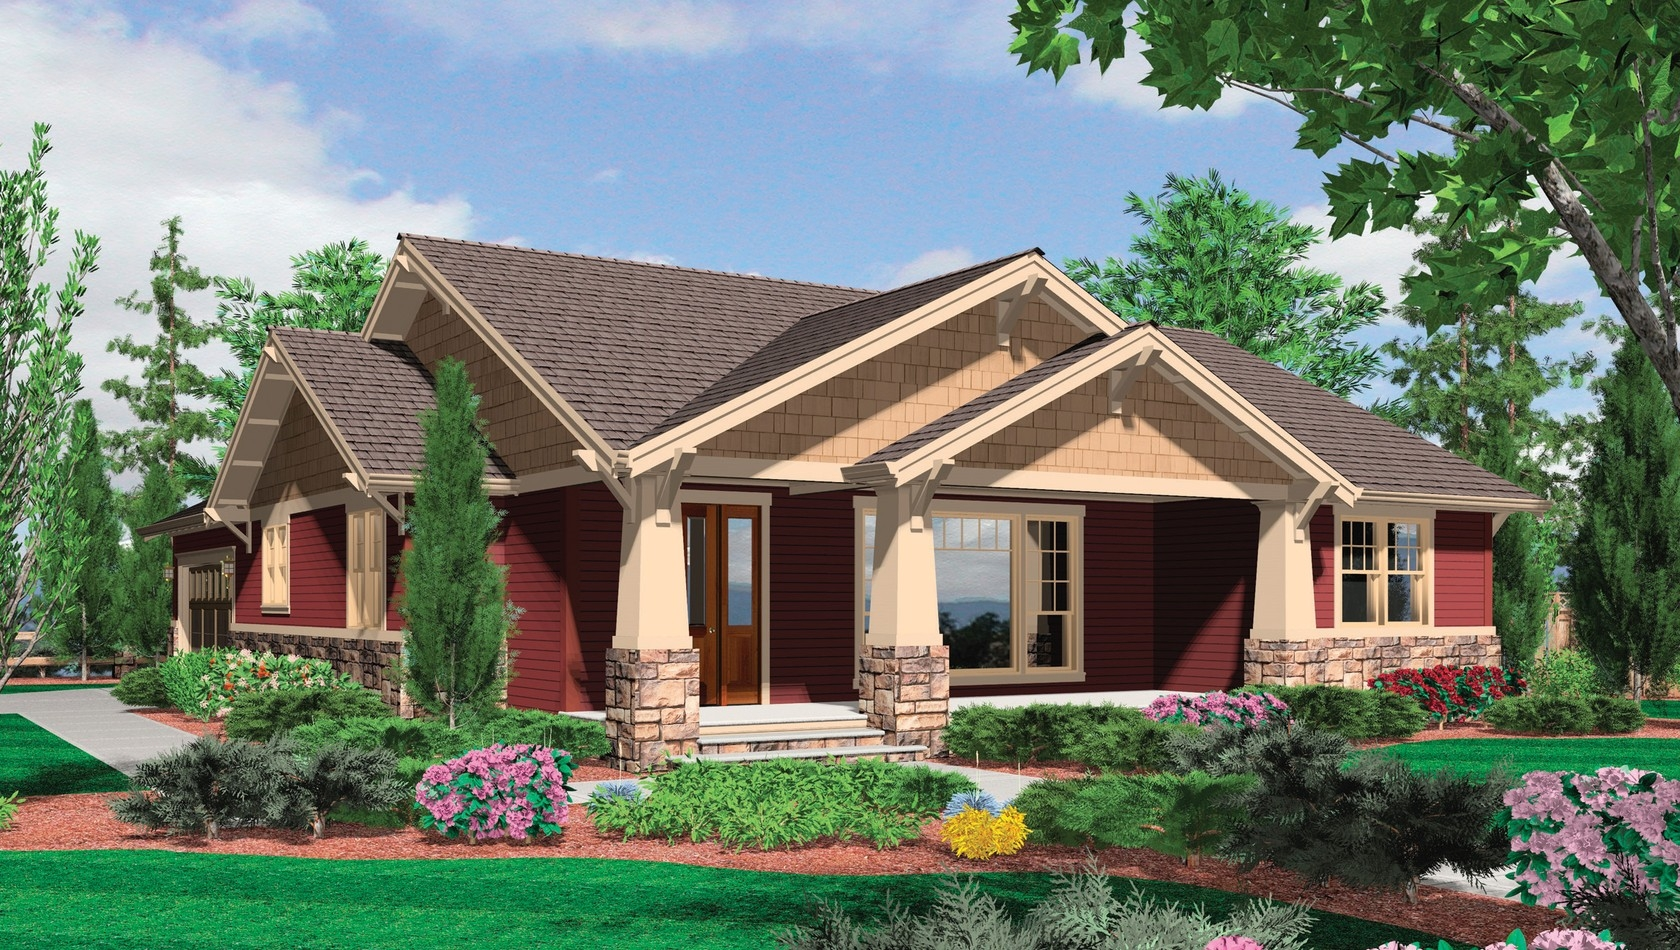 One Story Brick House Plans With Basement